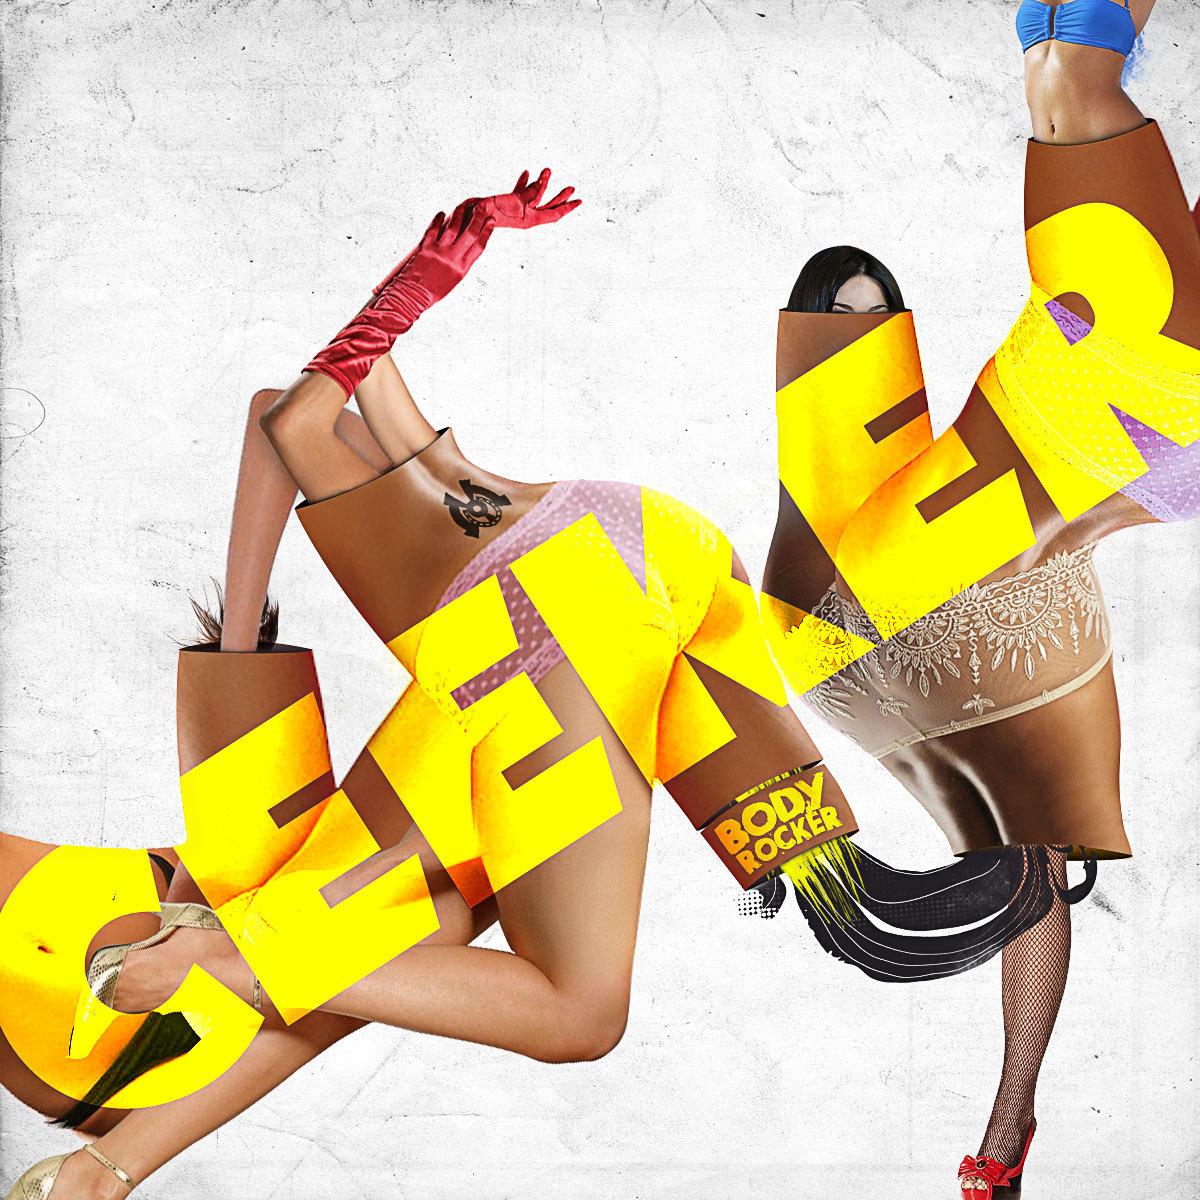 Ceeker - Body Rocker (Zeno Remix) @ 'Body Rocker' album (electronic, dubstep)